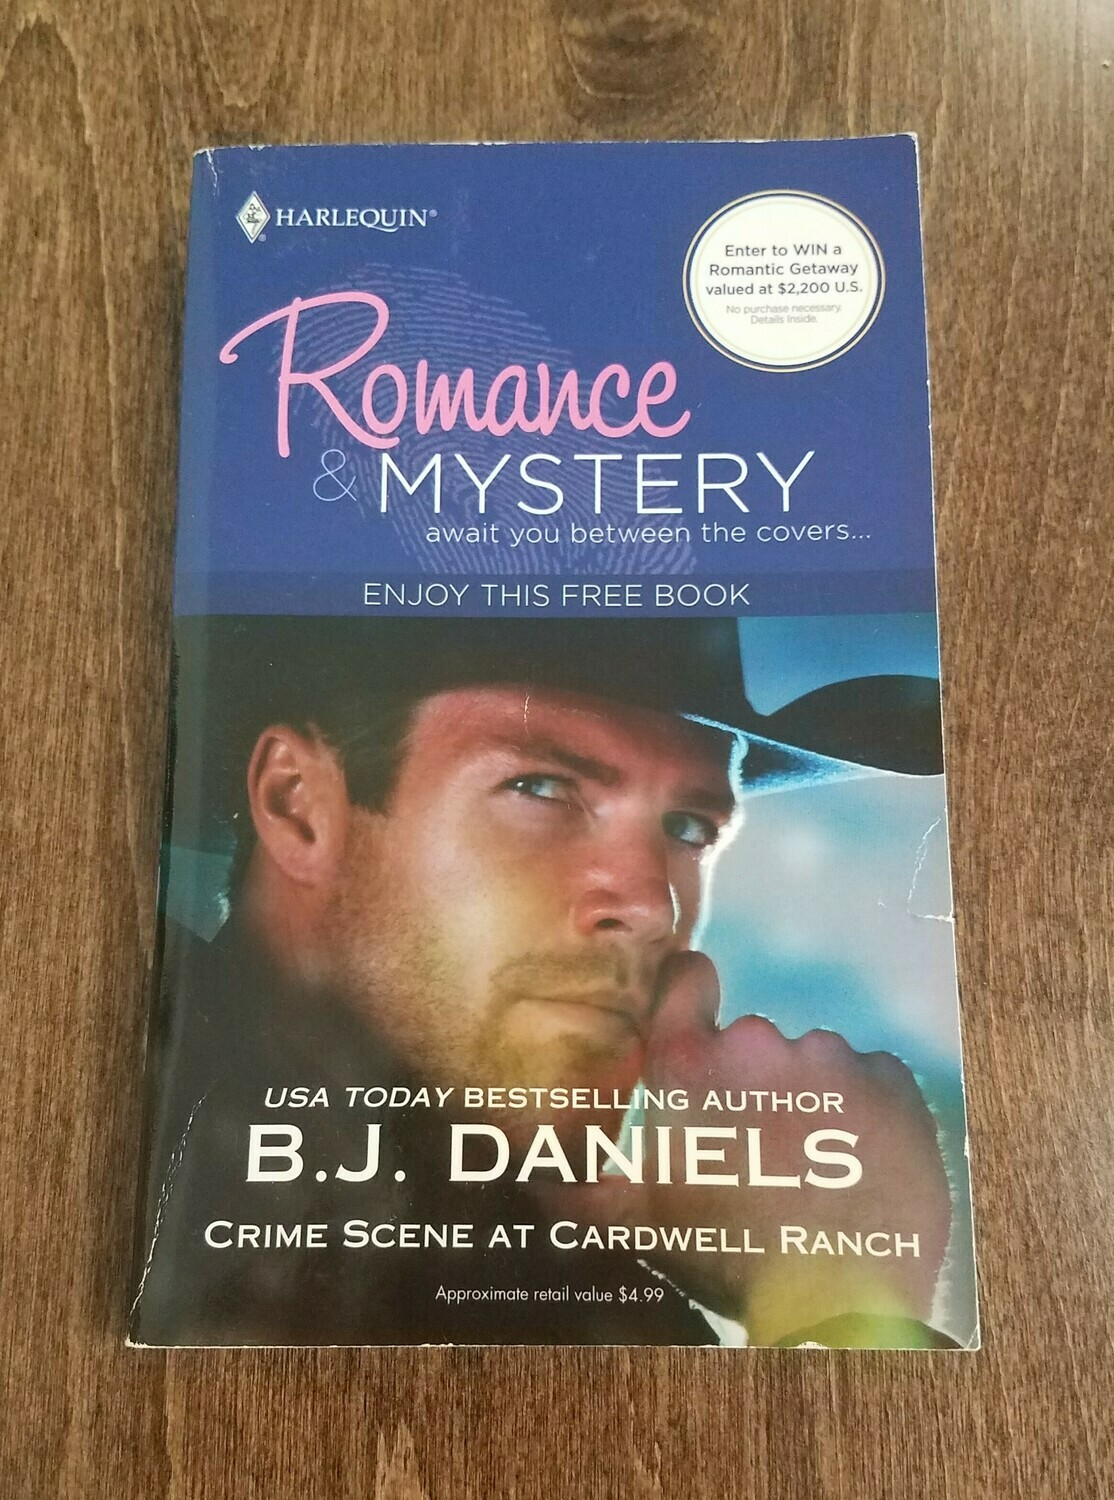 Crime Scene at Cardwell Ranch by B.J. Daniels